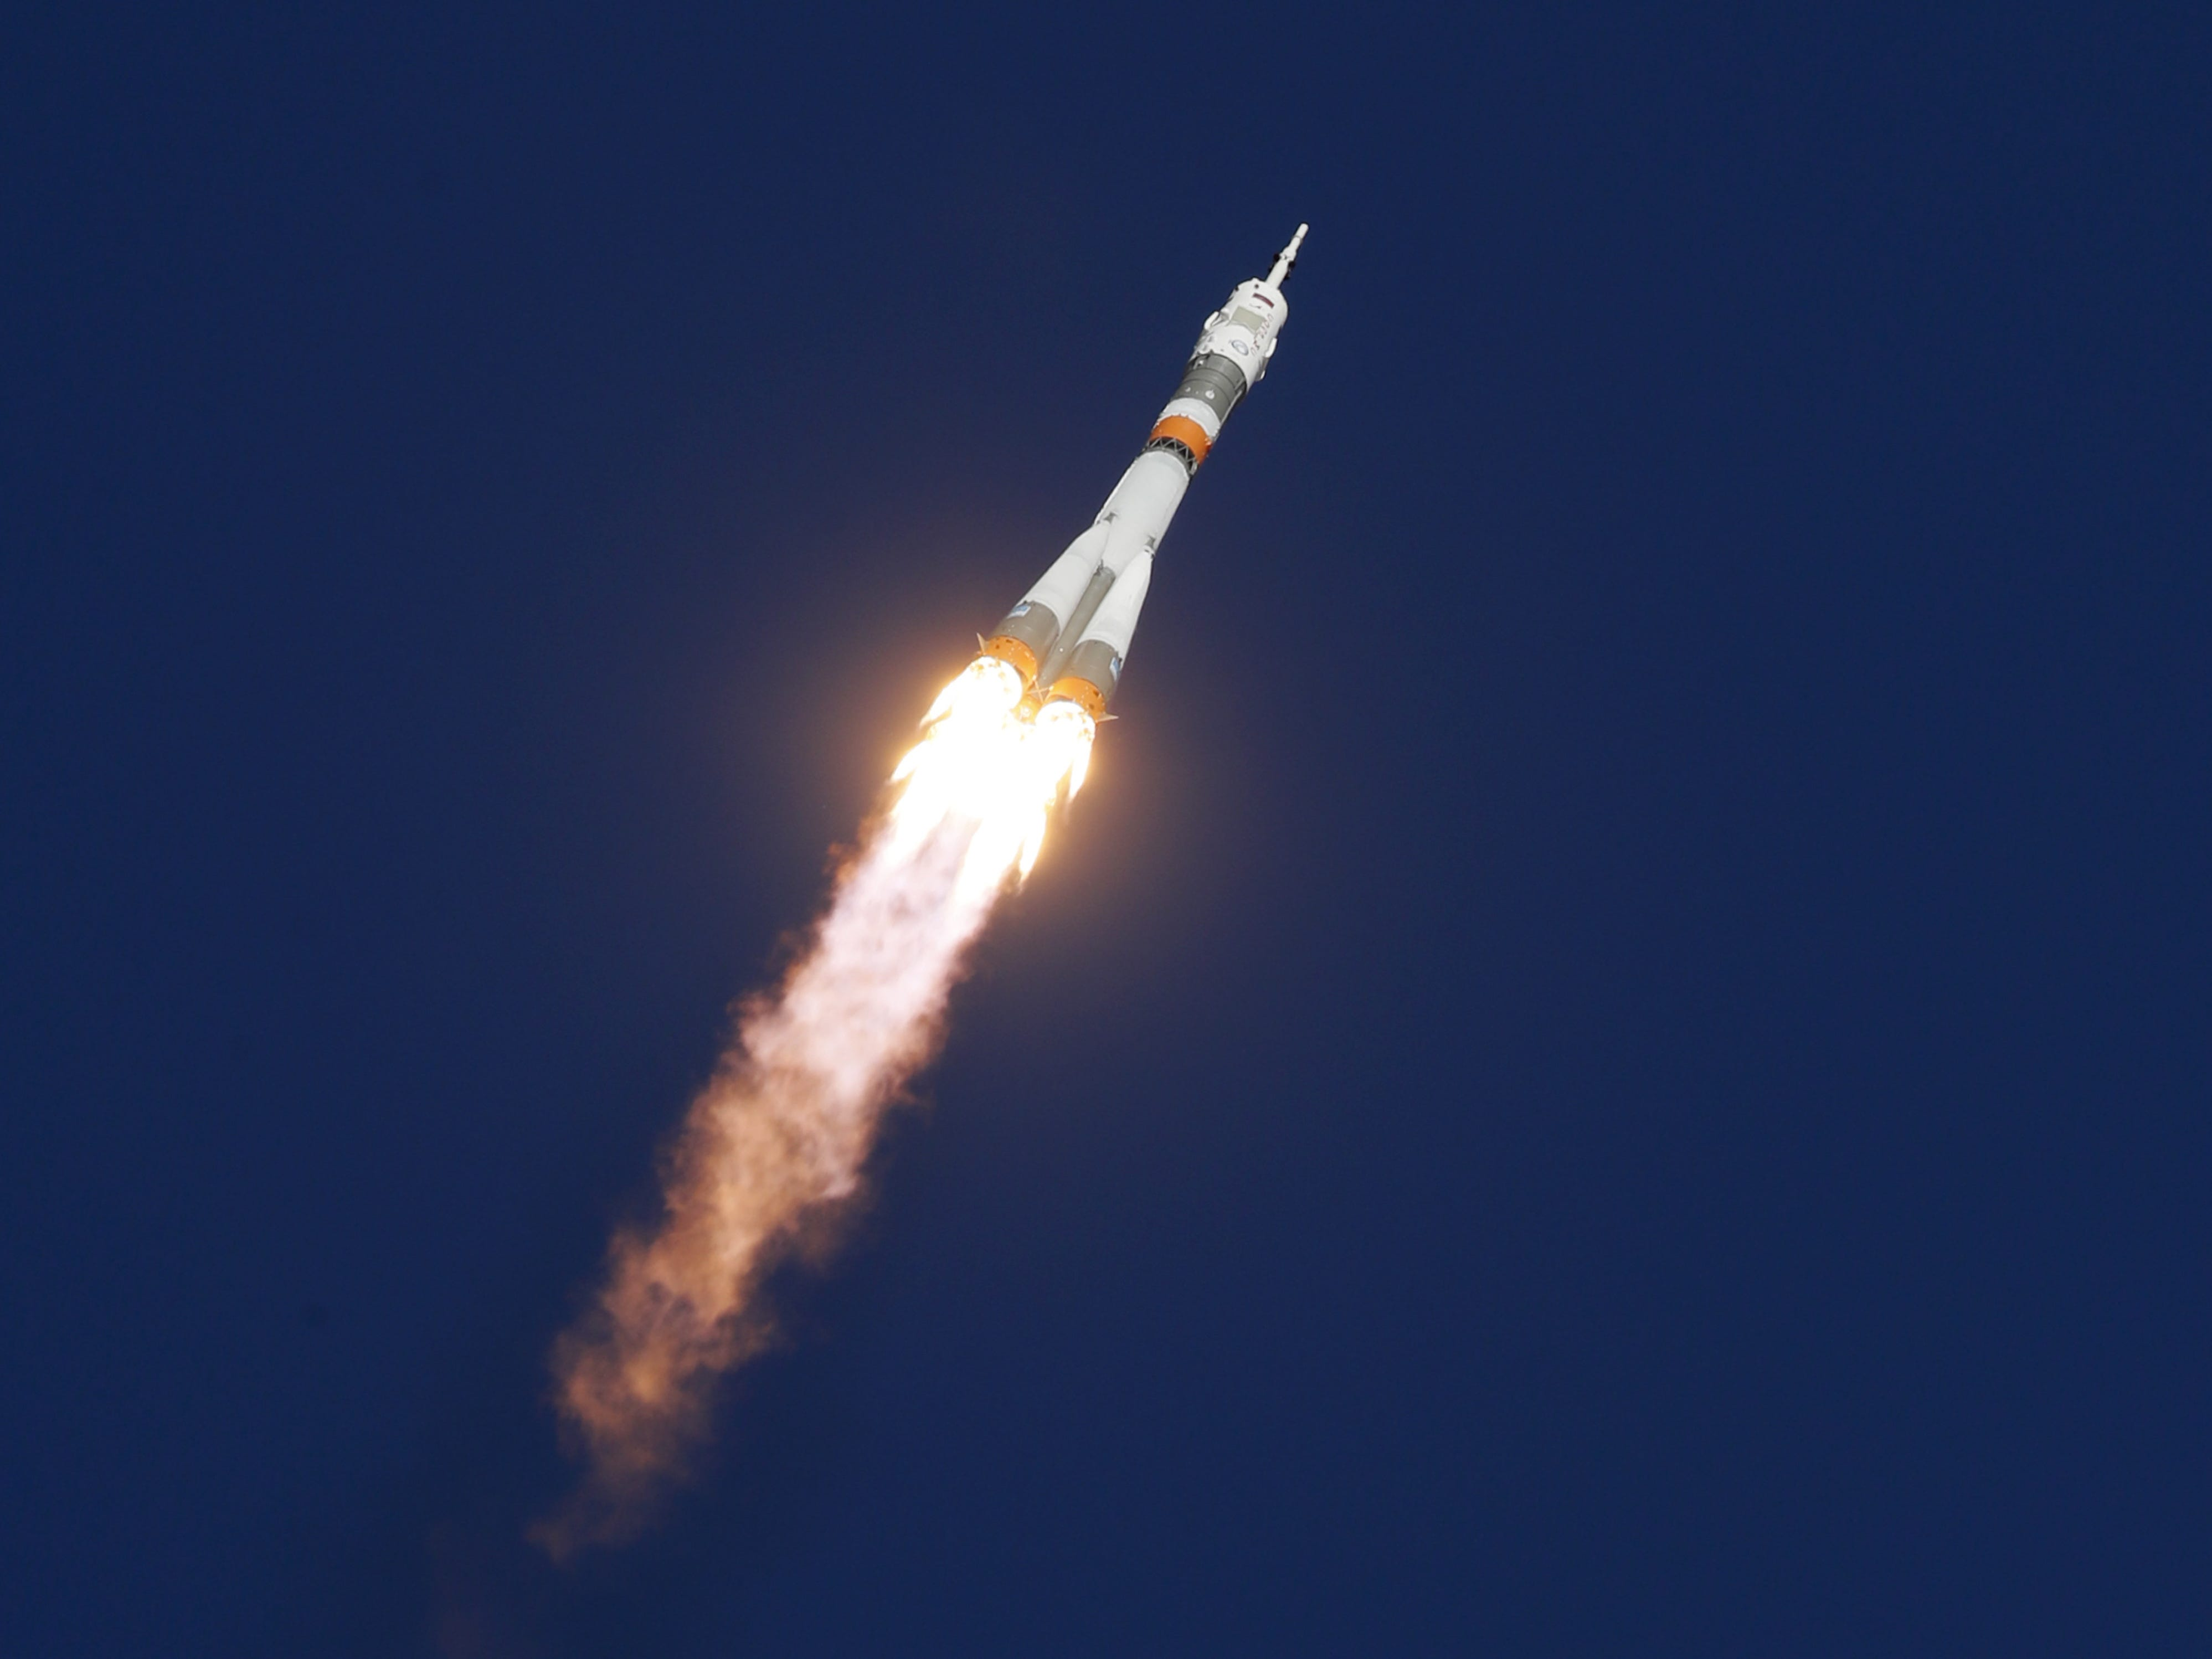 epa07085356 Soyuz booster rocket with the Soyuz MS-10 spacecraft carrying crew members expedition 57/58, Roscosmos cosmonaut Alexey Ovchinin and NASA astronaut Nick Hague to the International Space Station (ISS) after take off from the launch pad at the Russian leased Baikonur cosmodrome, Kazakhstan, 11 October 2018. The Russian Soyuz rocket has malfunctioned on lift-off has landed safely in Kazahstan, Russian media report.  EPA-EFE/YURI KOCHETKOV ORG XMIT: koch45